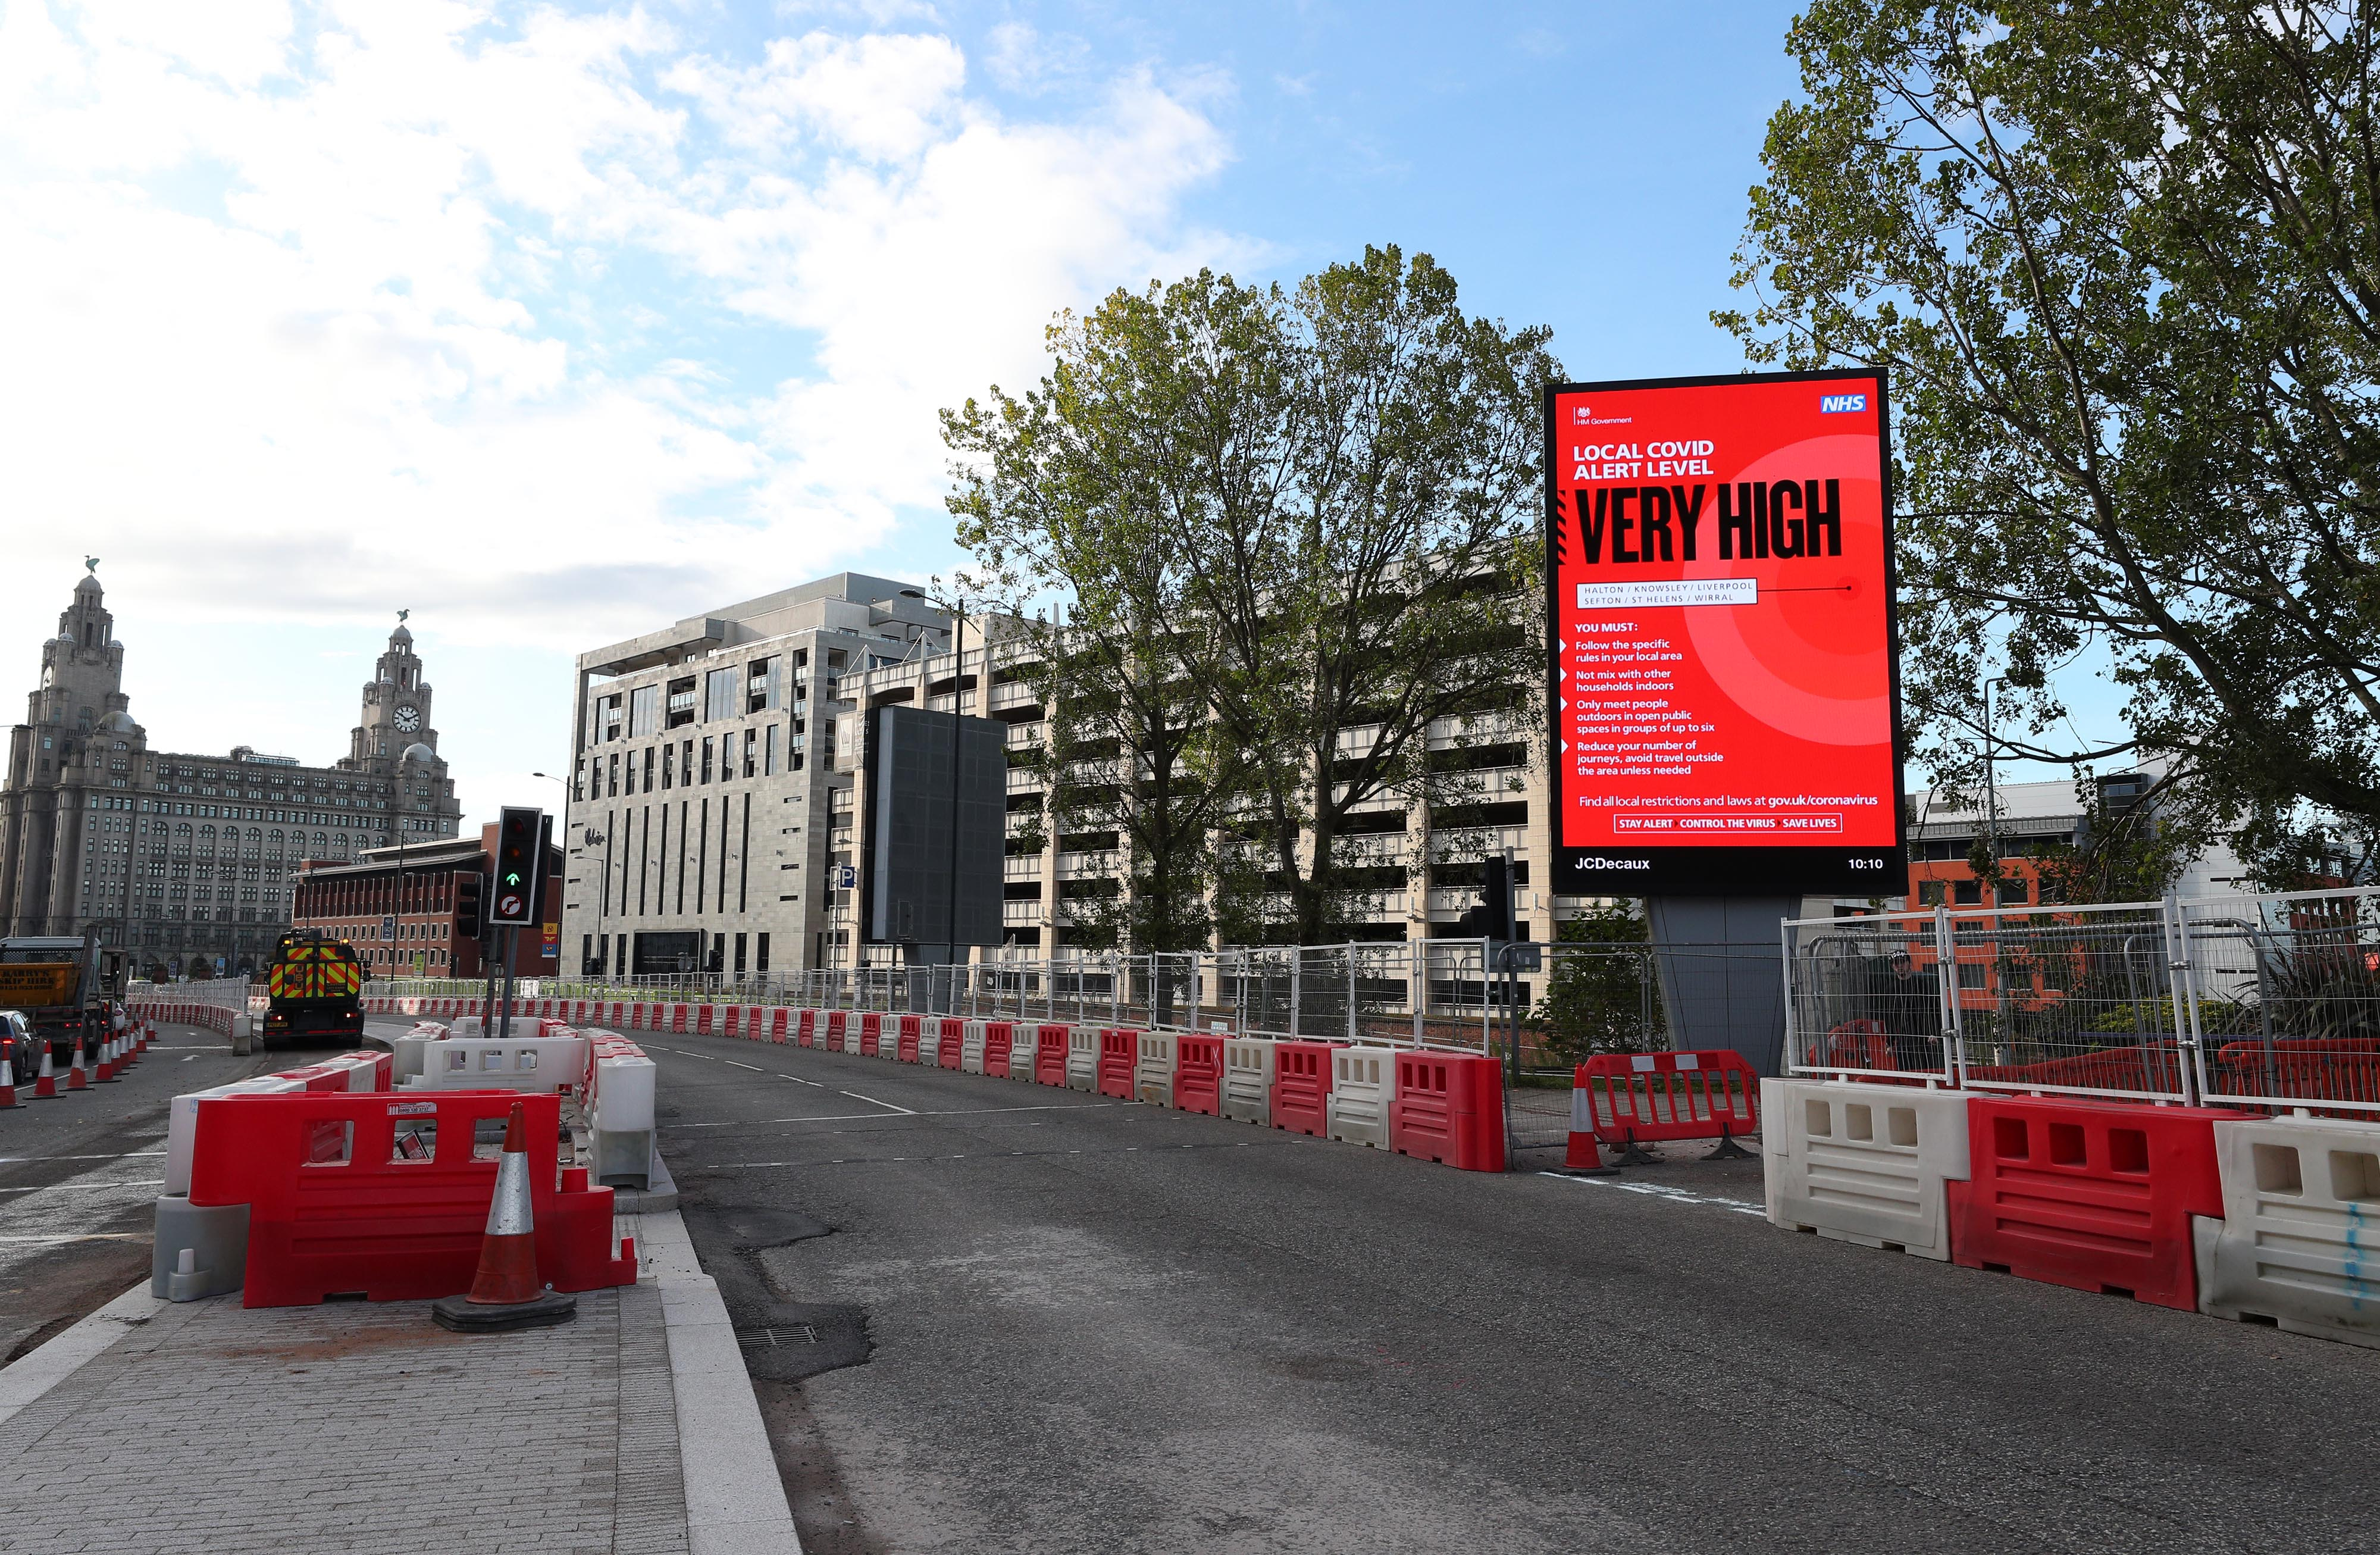 A Covid alert level sign in Liverpool after Prime Minister Boris Johnson set out a new three-tier system of alert levels for England following rising coronavirus cases and hospital admissions.